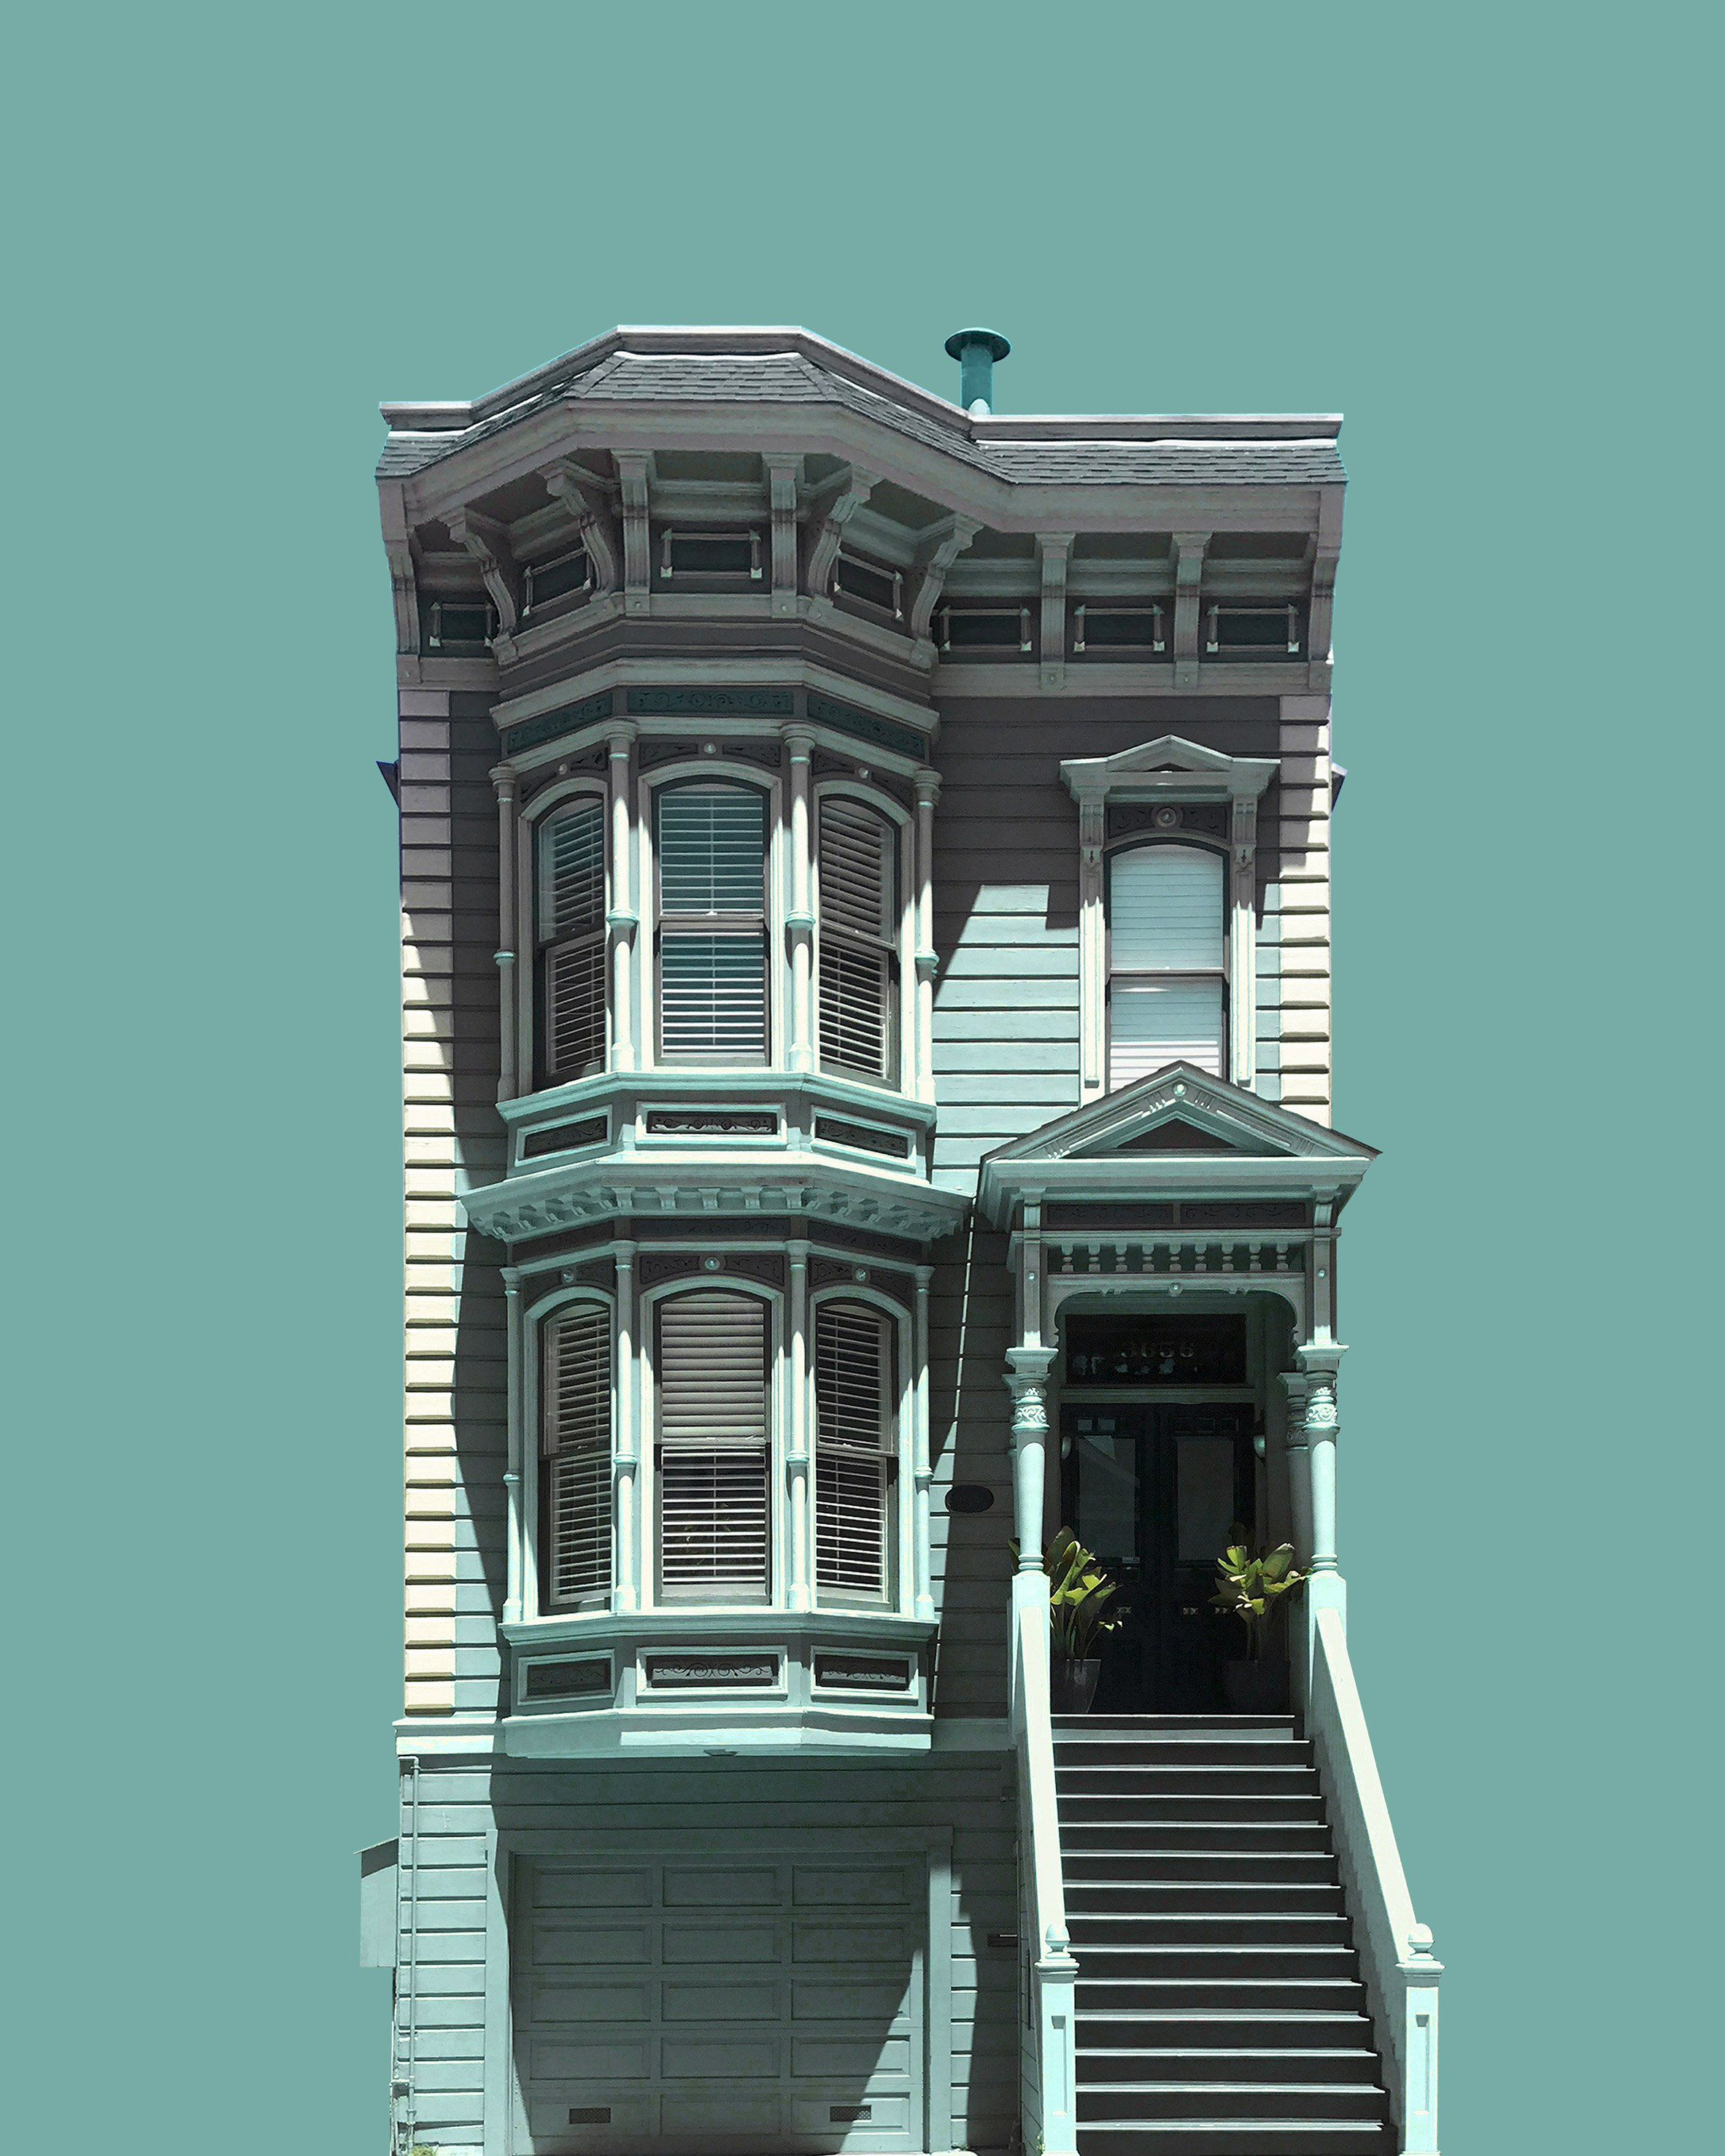 """Eric Randall Morris mutates architectural photos to show """"a distorted vision of the American dream"""""""